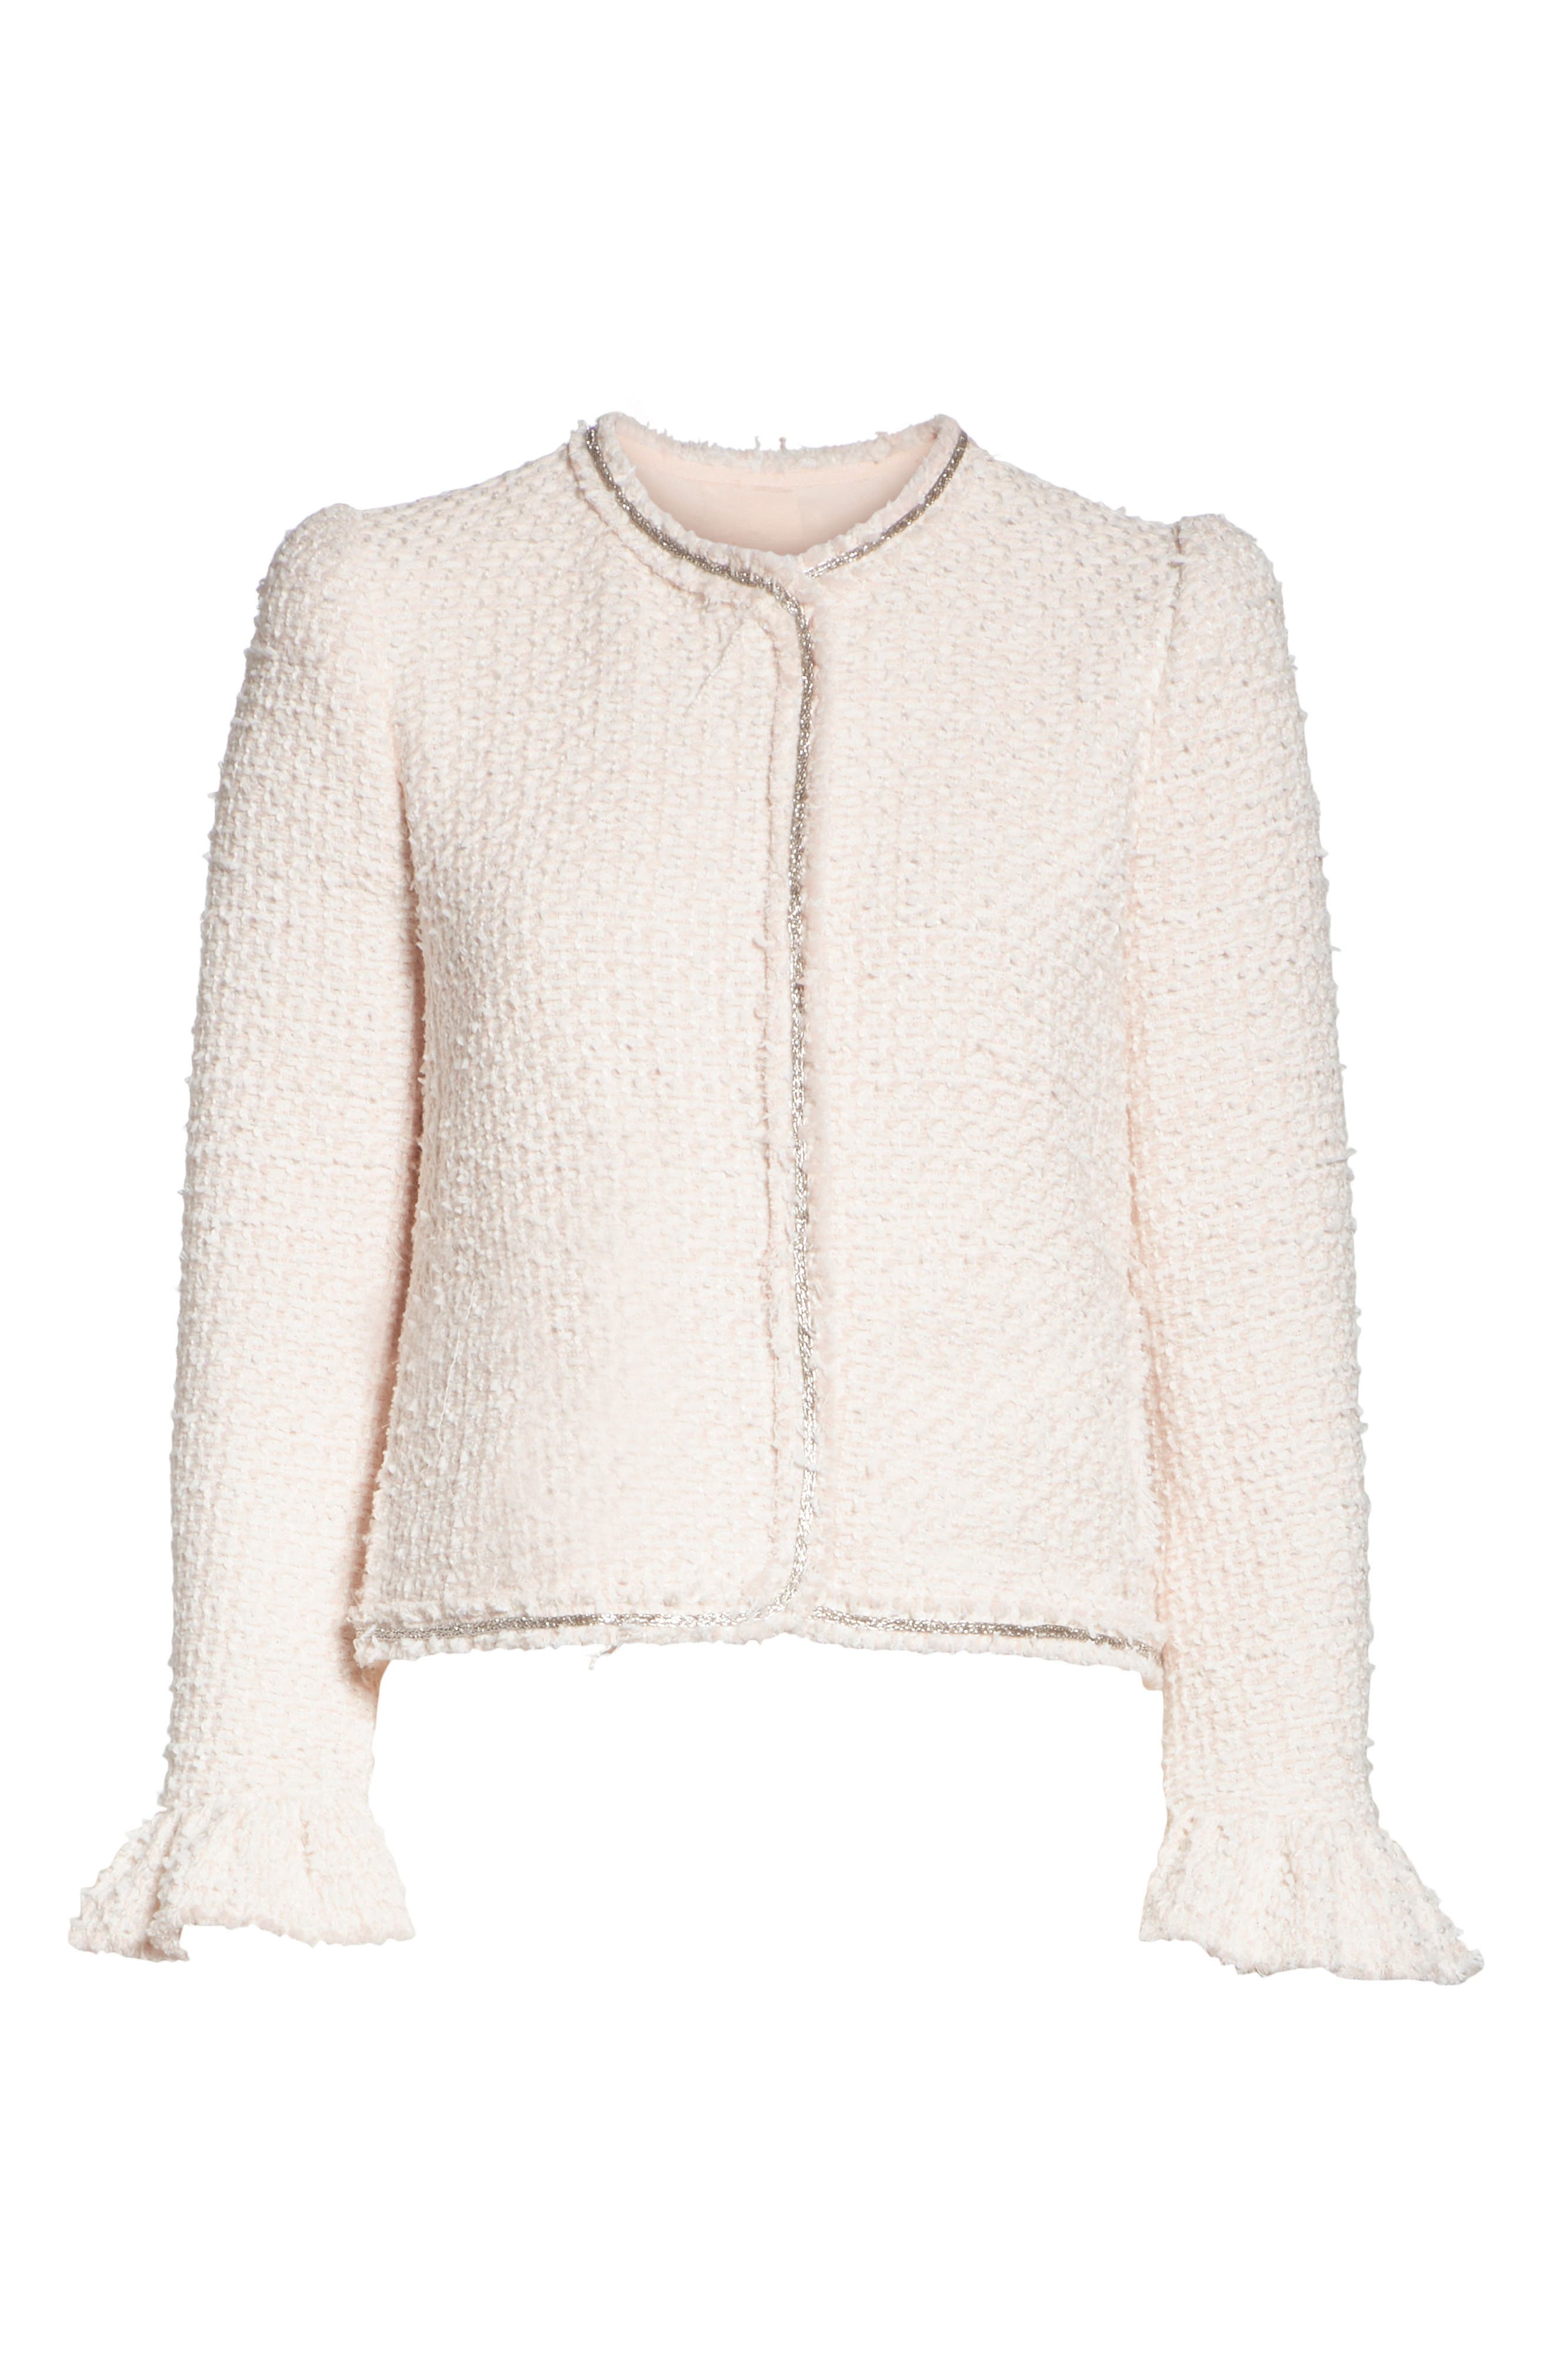 Ruffle Sleeve Tweed Jacket,                             Alternate thumbnail 6, color,                             Powder Pink Combo